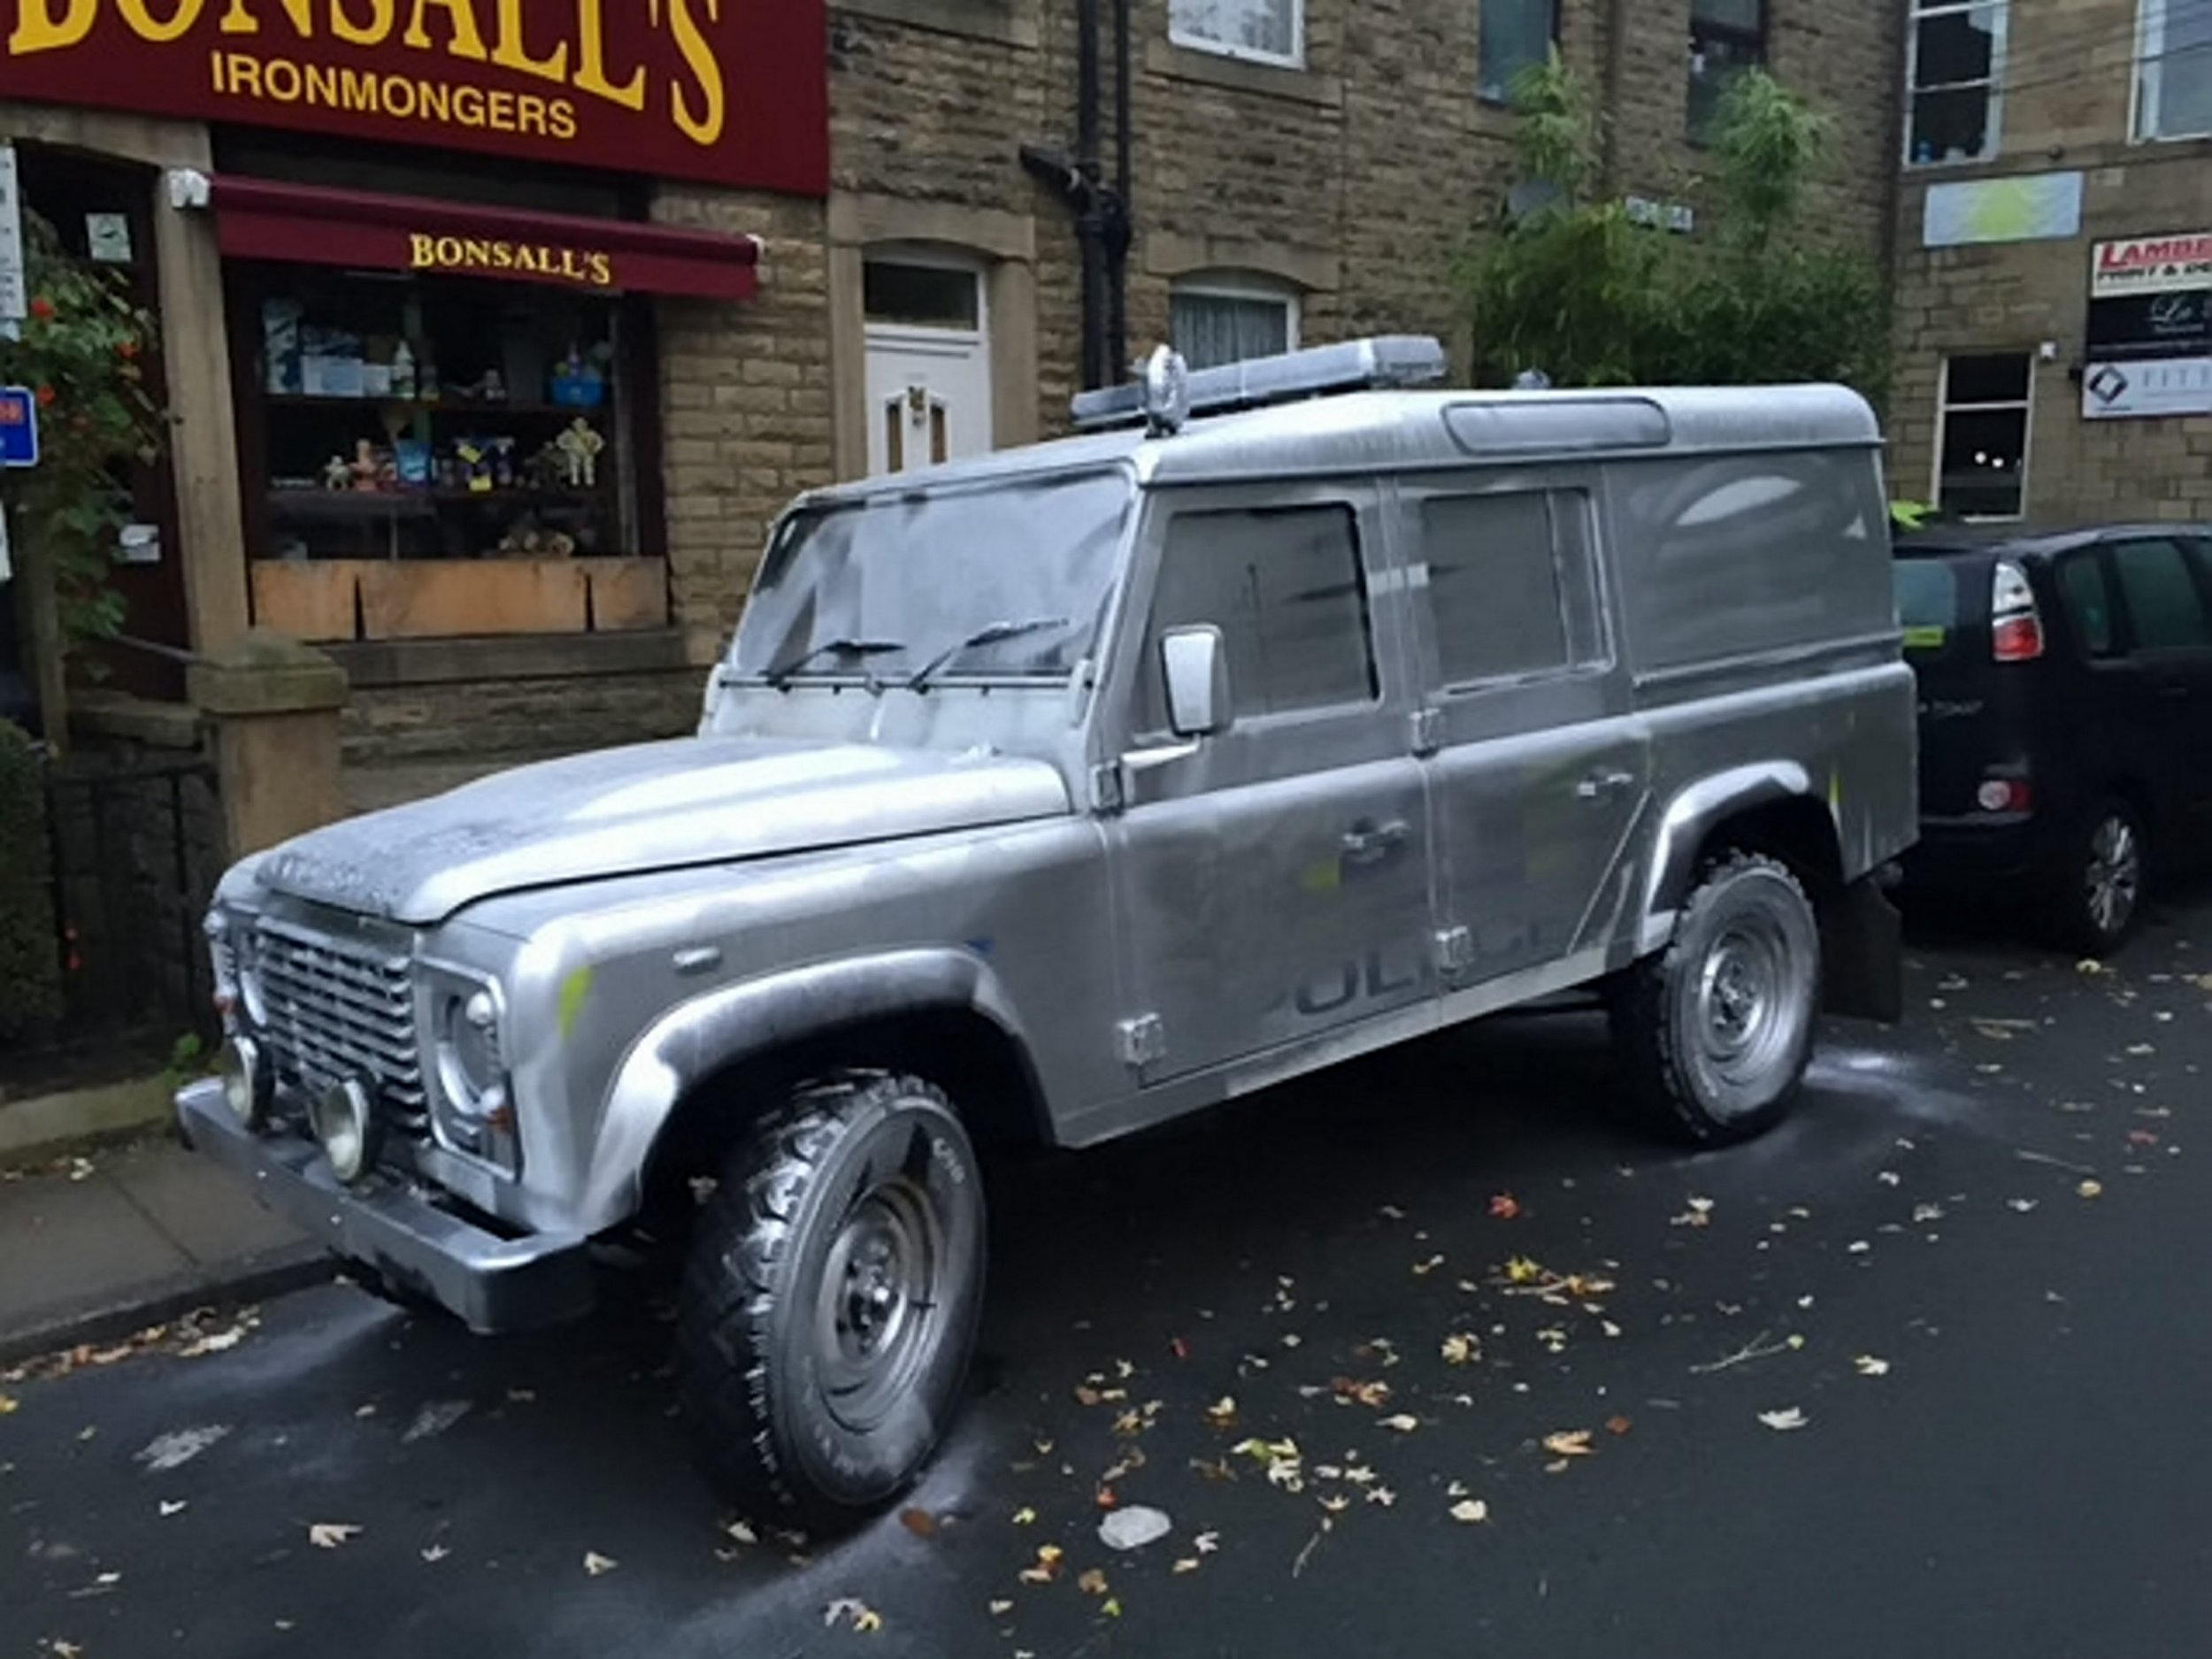 """A police Land Rover that has been spray painted silver. Police in Hebden Bridge, Yorkshire, are appealing for information following a criminal damage incident. Sometime between 9.30pm last night (10th October) and 4.45am this morning on Royd Villas where a Police Land Rover was painted silver. See ROSS PARRY story RPYSILVER. Neighbourhood Inspector John Simpson said: """"Some people might find this funny but the extent of the damage means that this vital emergency vehicle will be off the road whilst it is repaired at a cost. It is a specialist vehicle used to access the more rural areas of Calderdale and as such is an essential vehicle for the local communities."""" ø"""